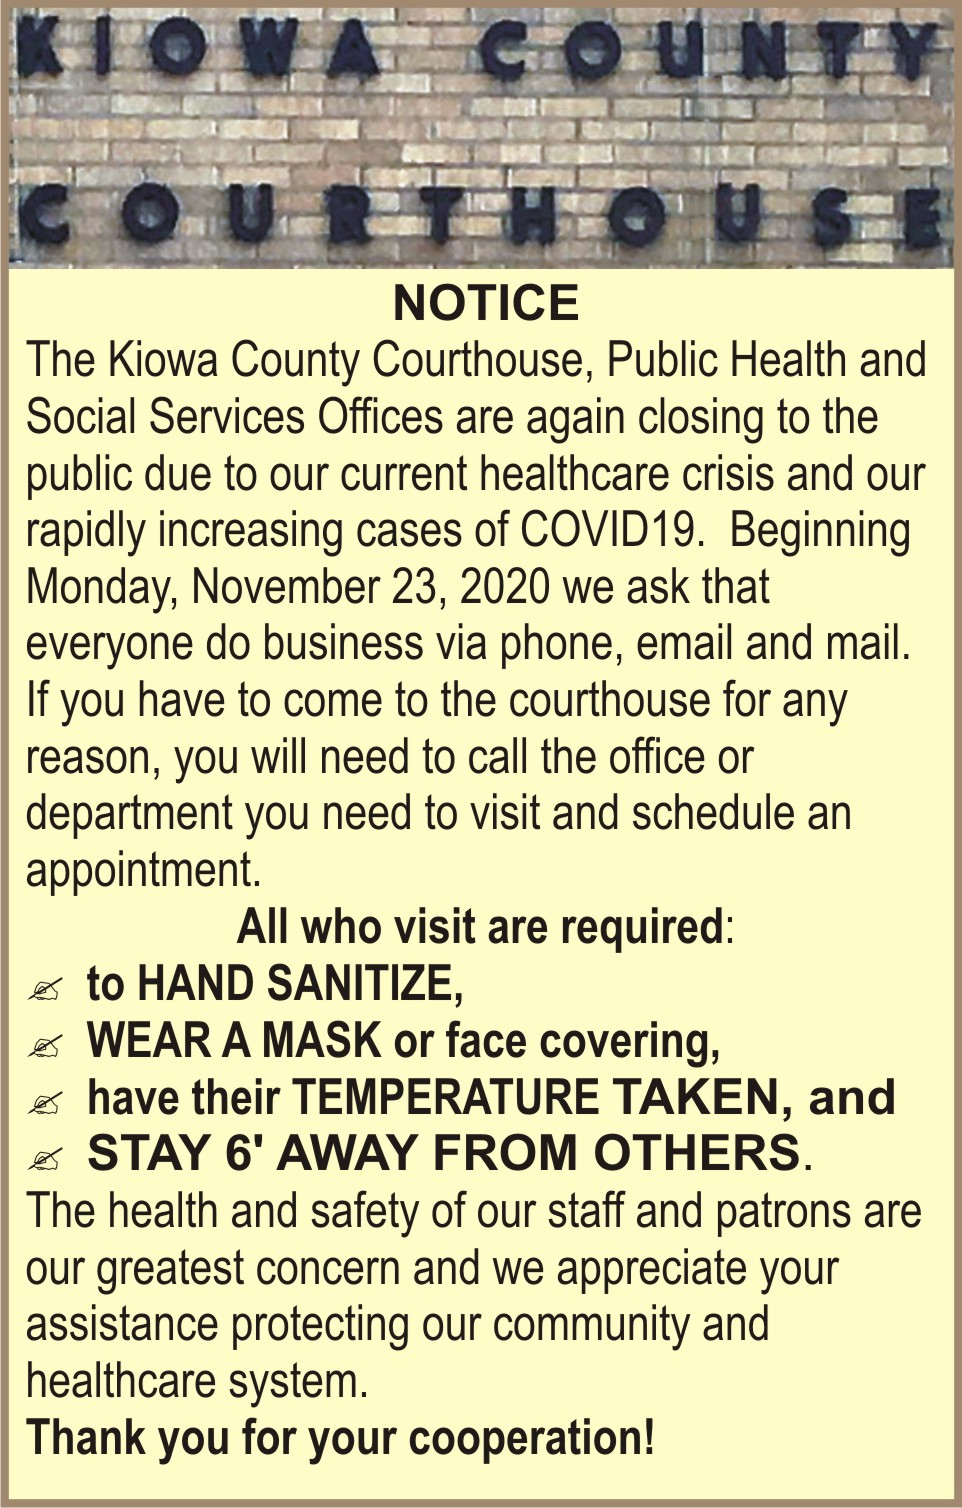 AD 2020-11 Government - Kiowa County Courthouse COVID-19 Requirements